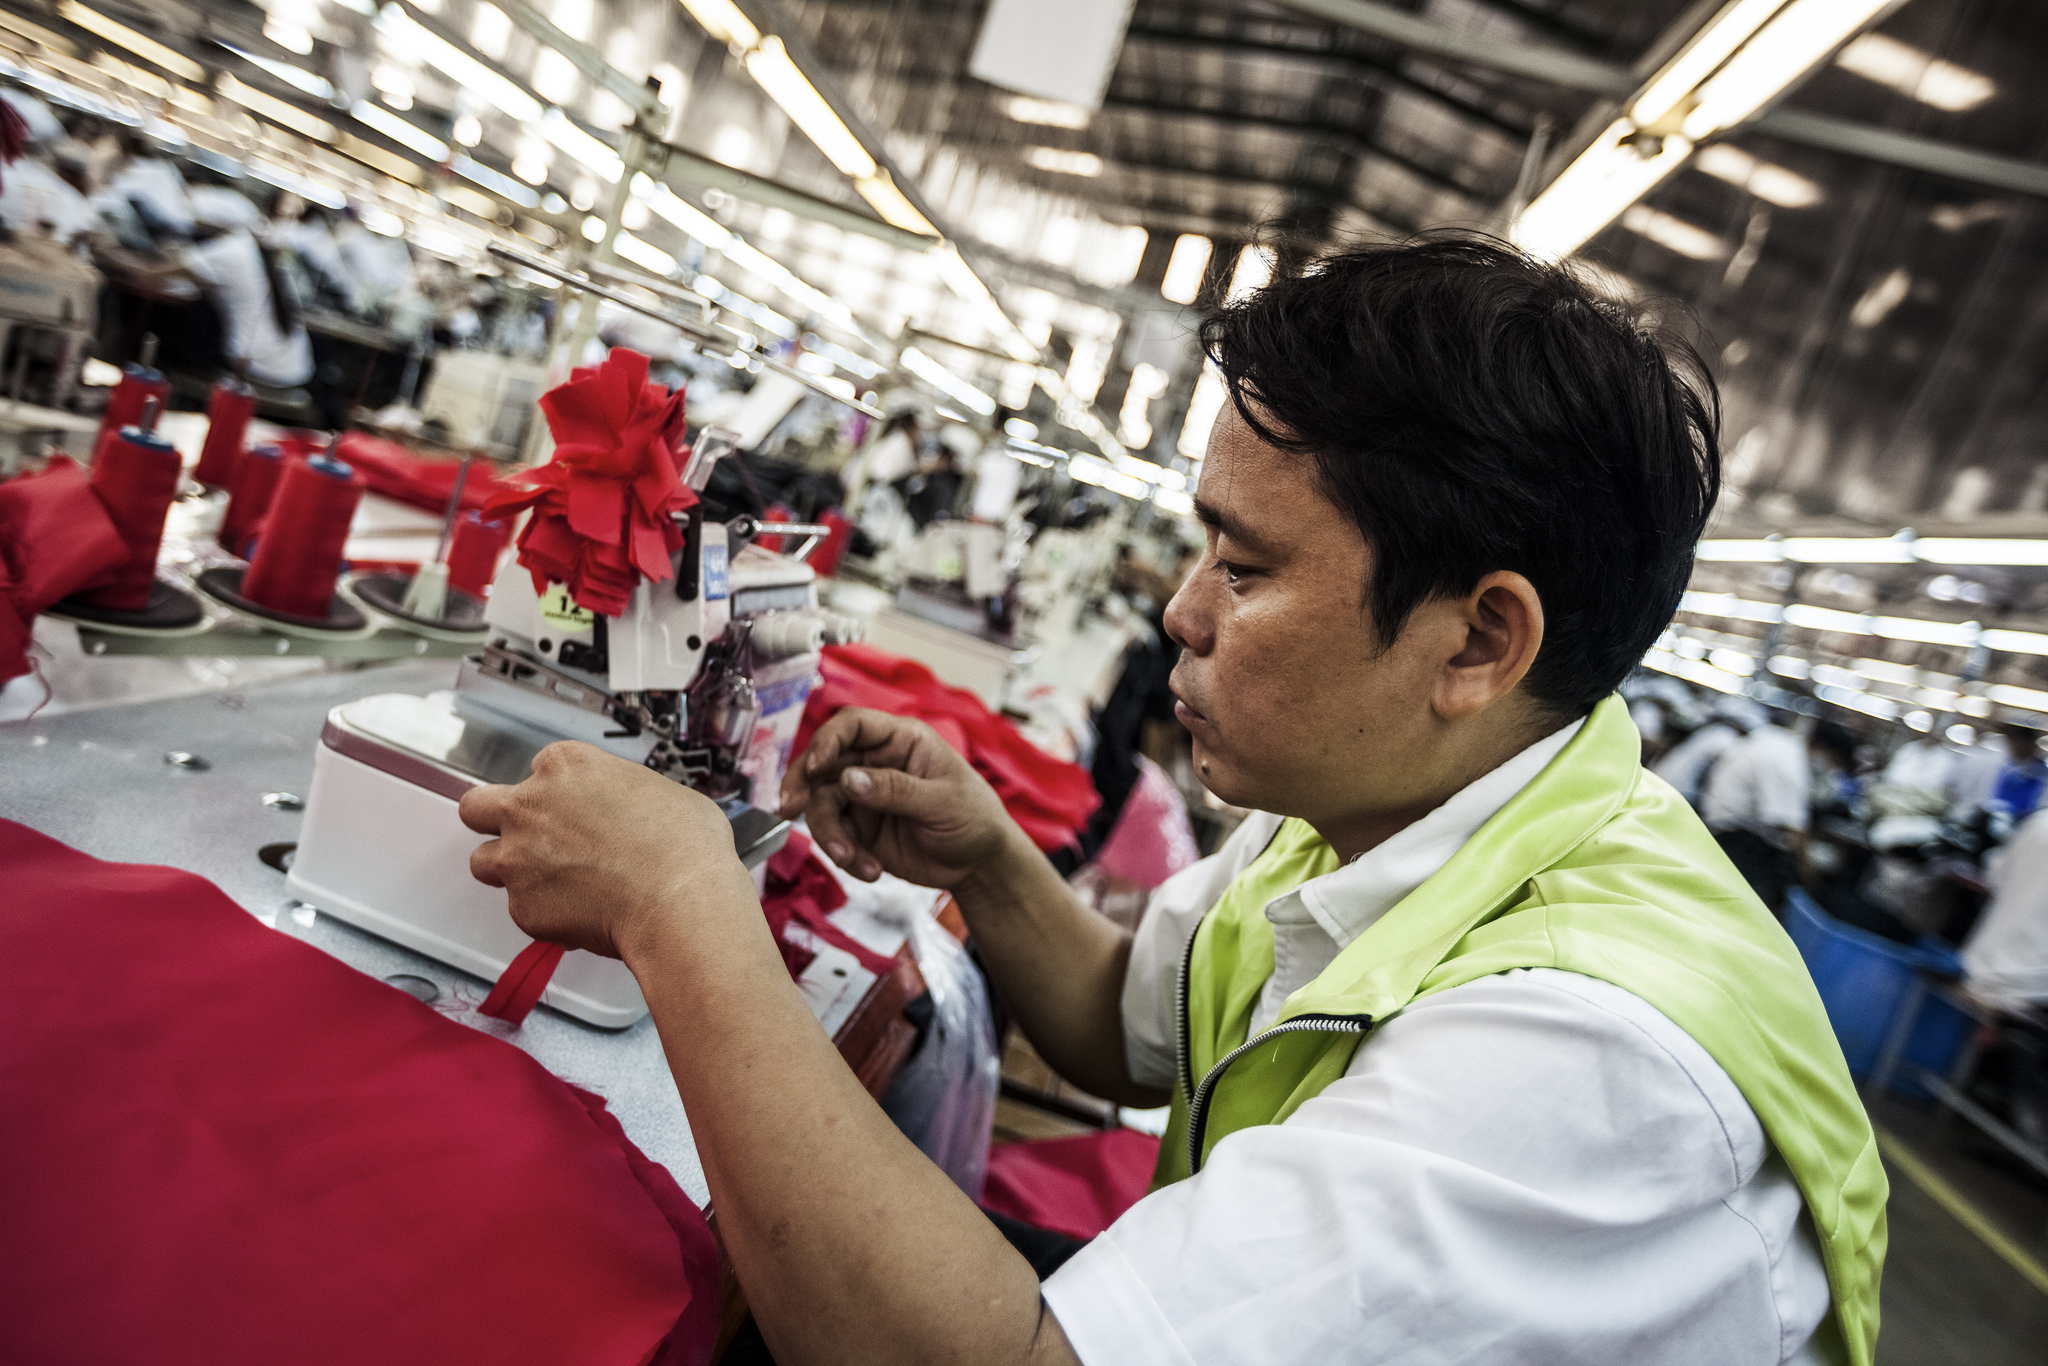 German manufacturers bail on sustainable textile alliance